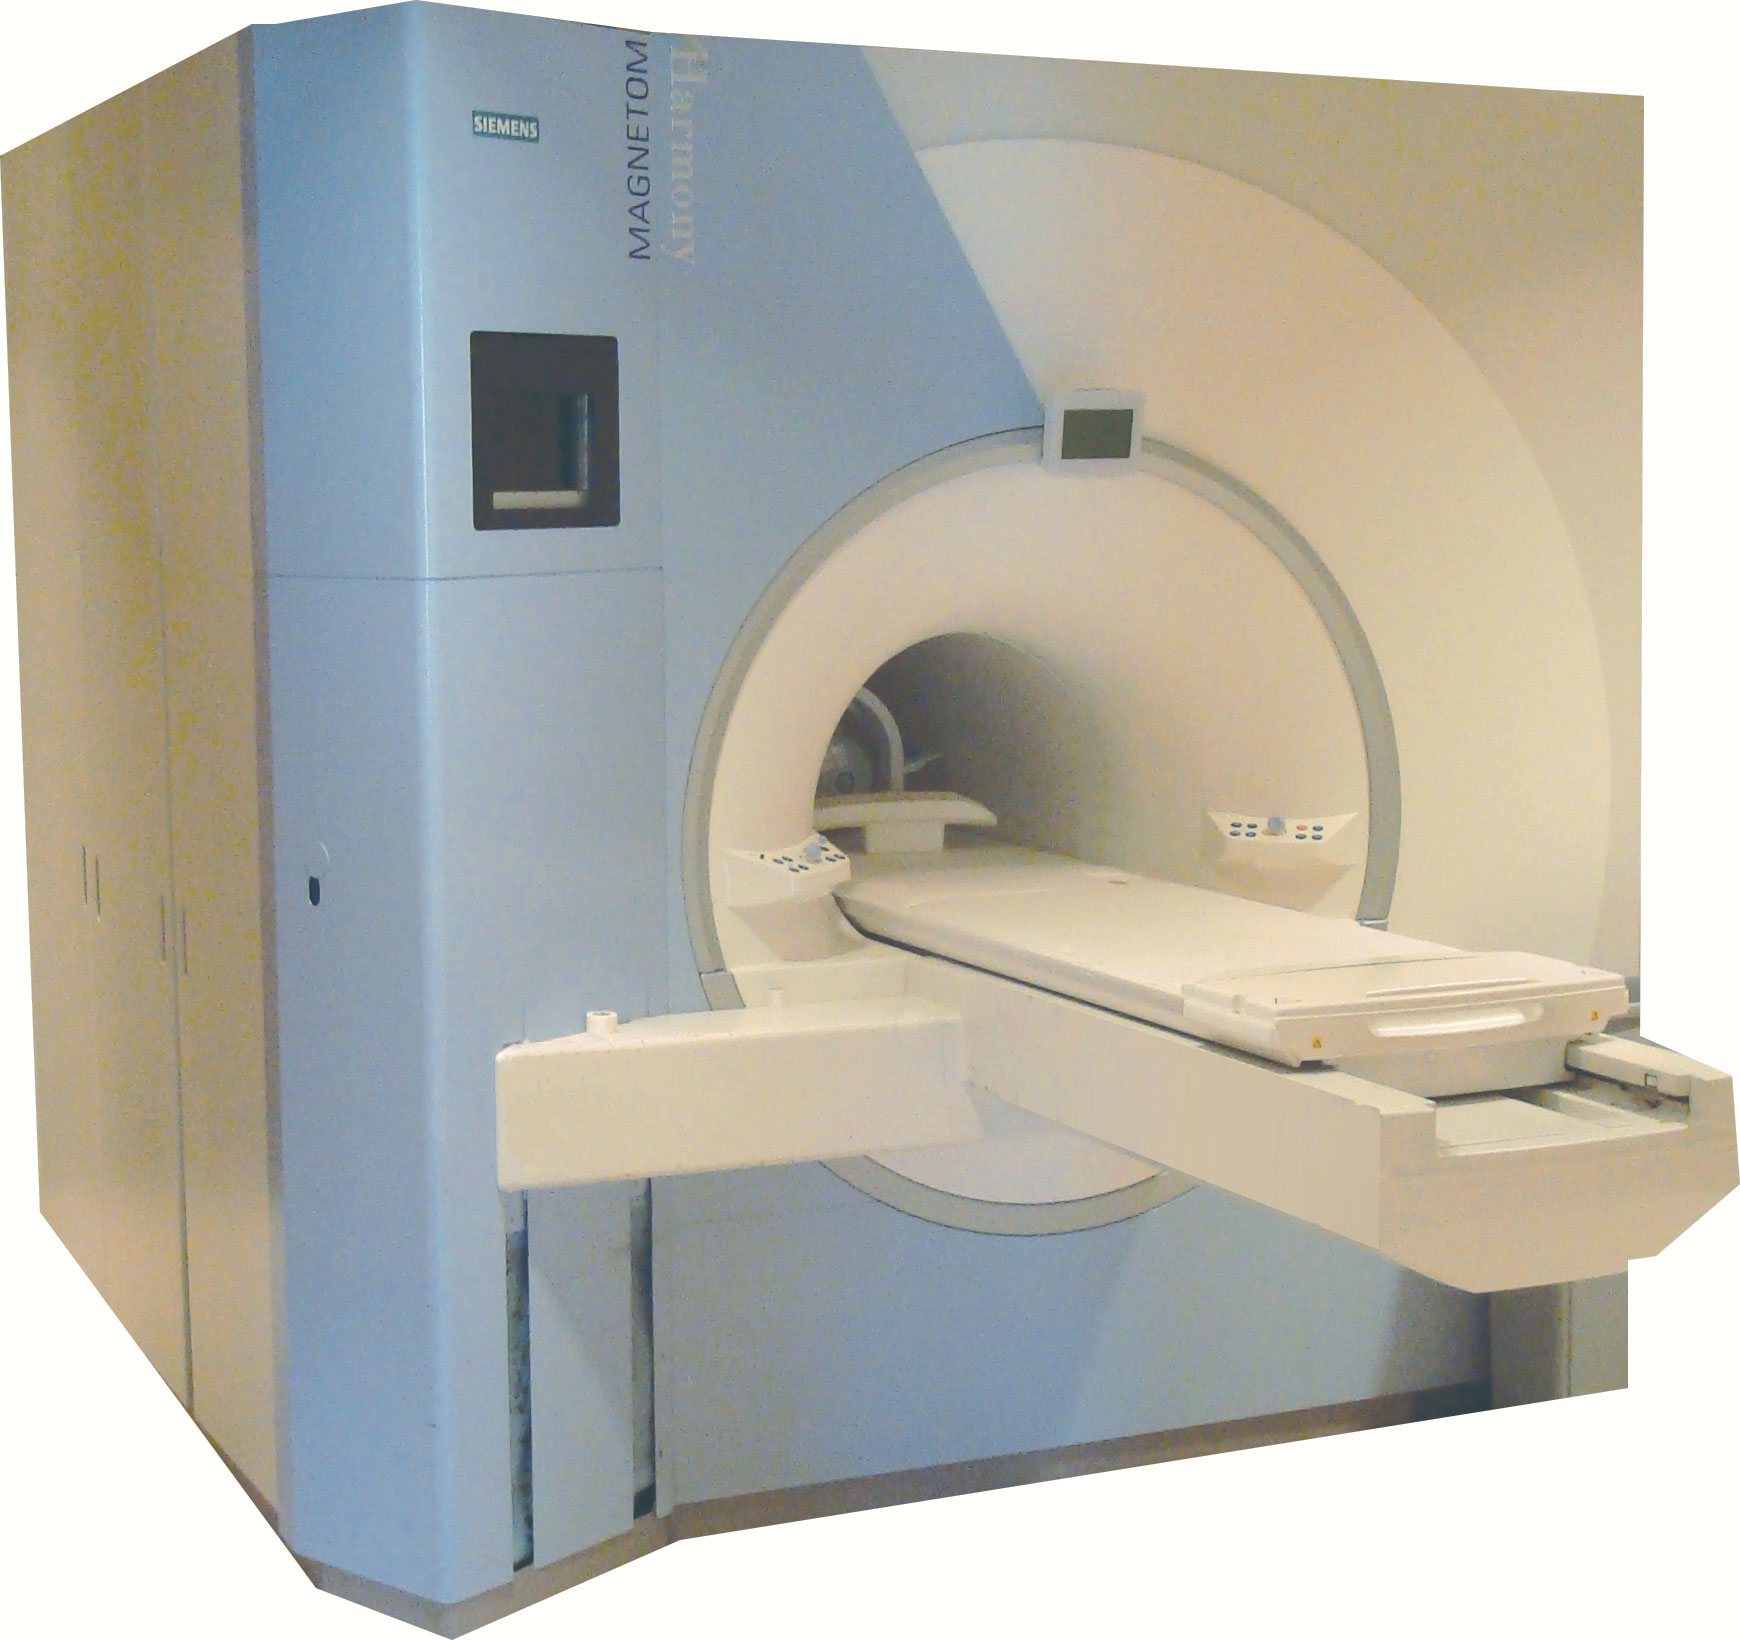 what is an open bore mri machine